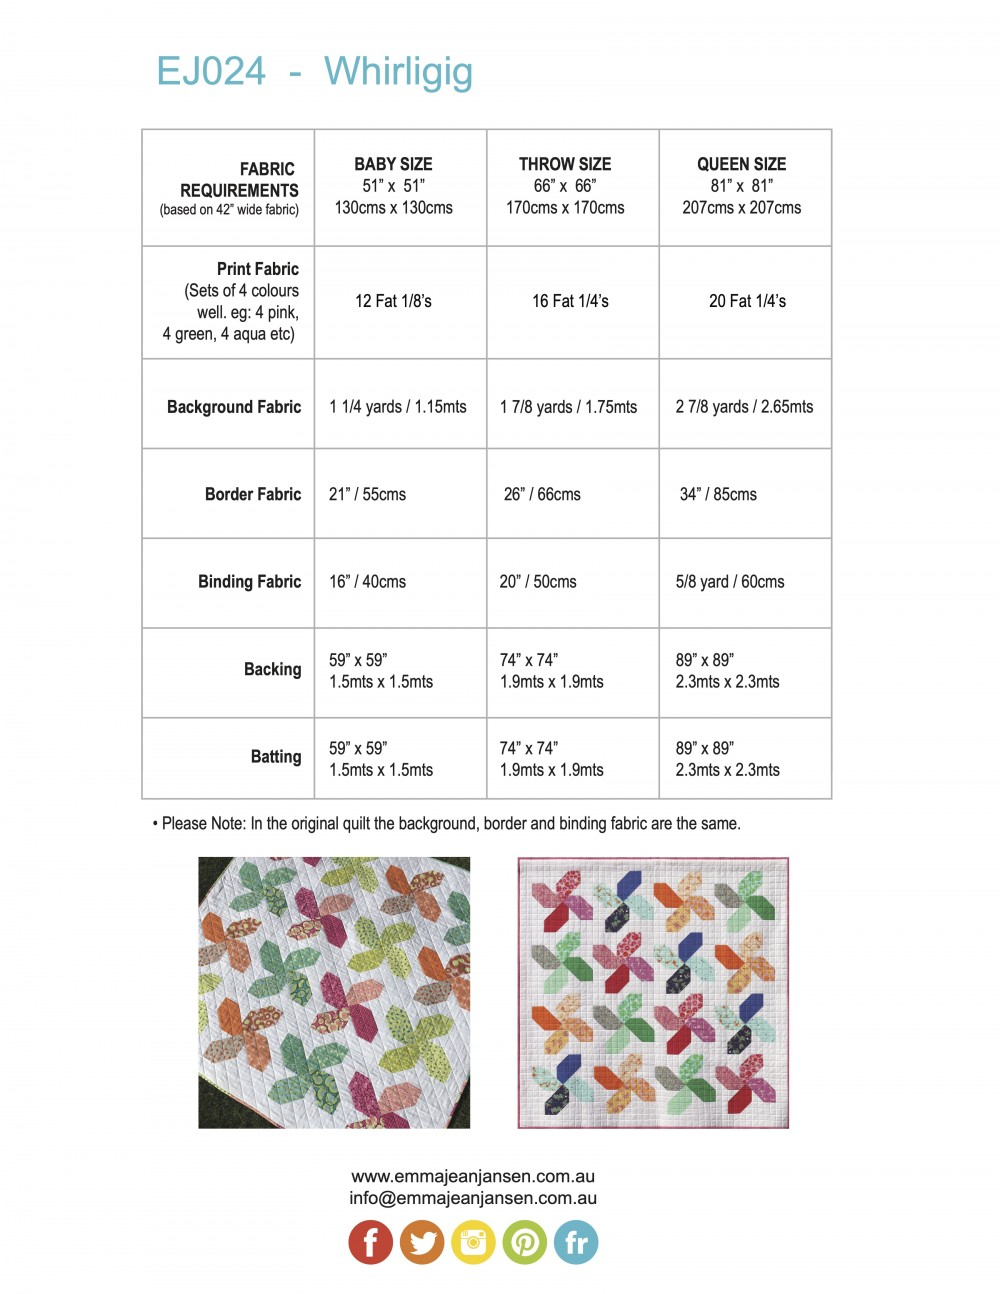 Whirligig Quilt Pattern Requirements